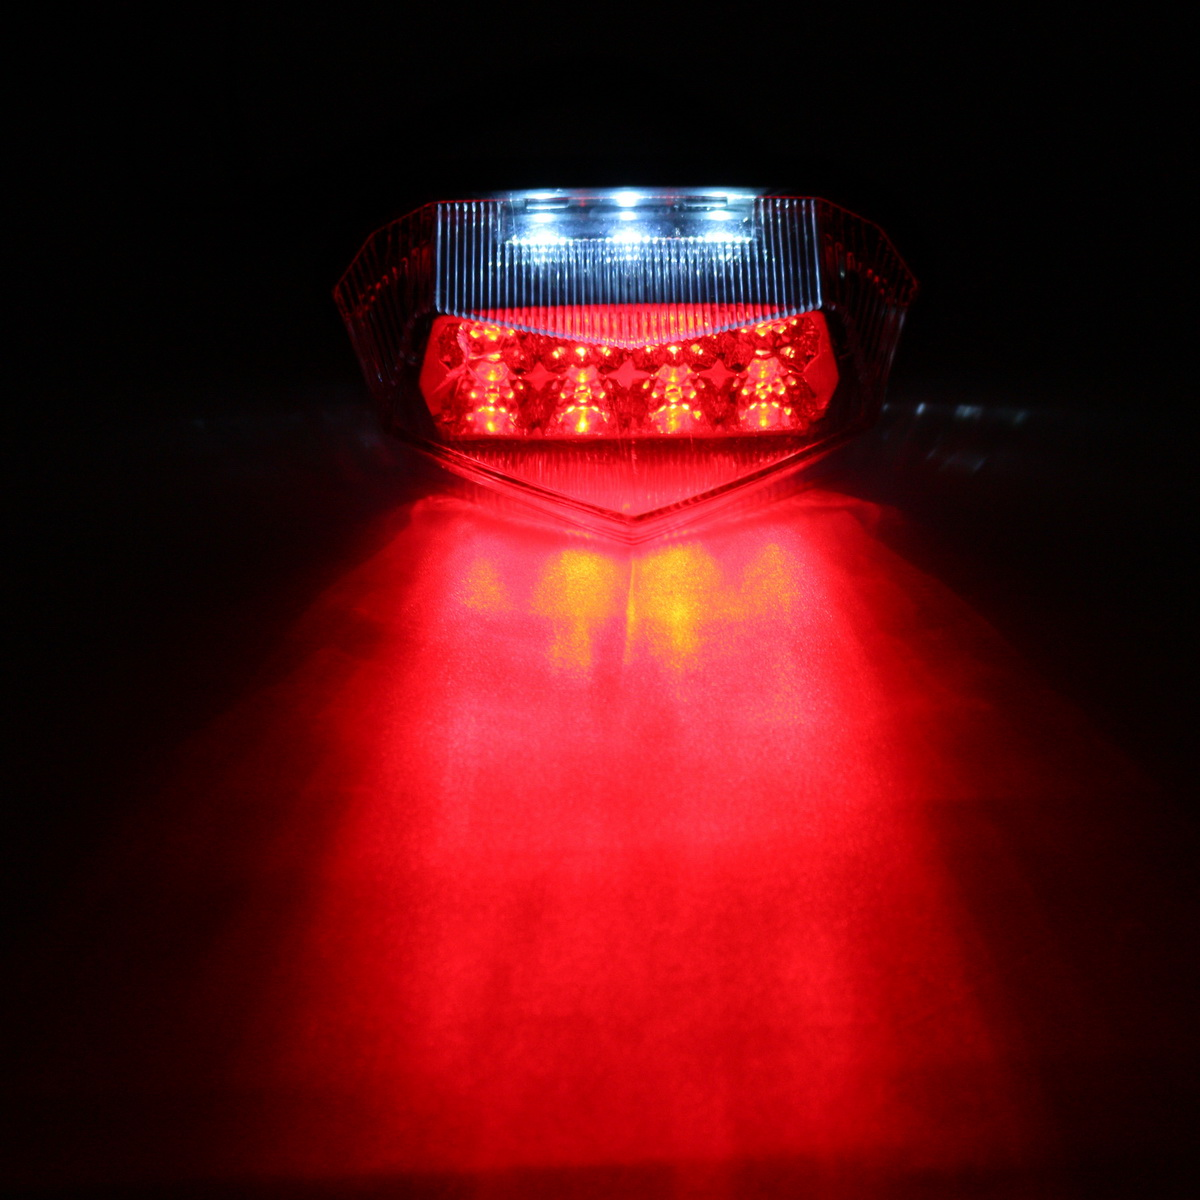 12V Motorcycle 11 LED Running License Plate Tail Indicator Brake Red Light